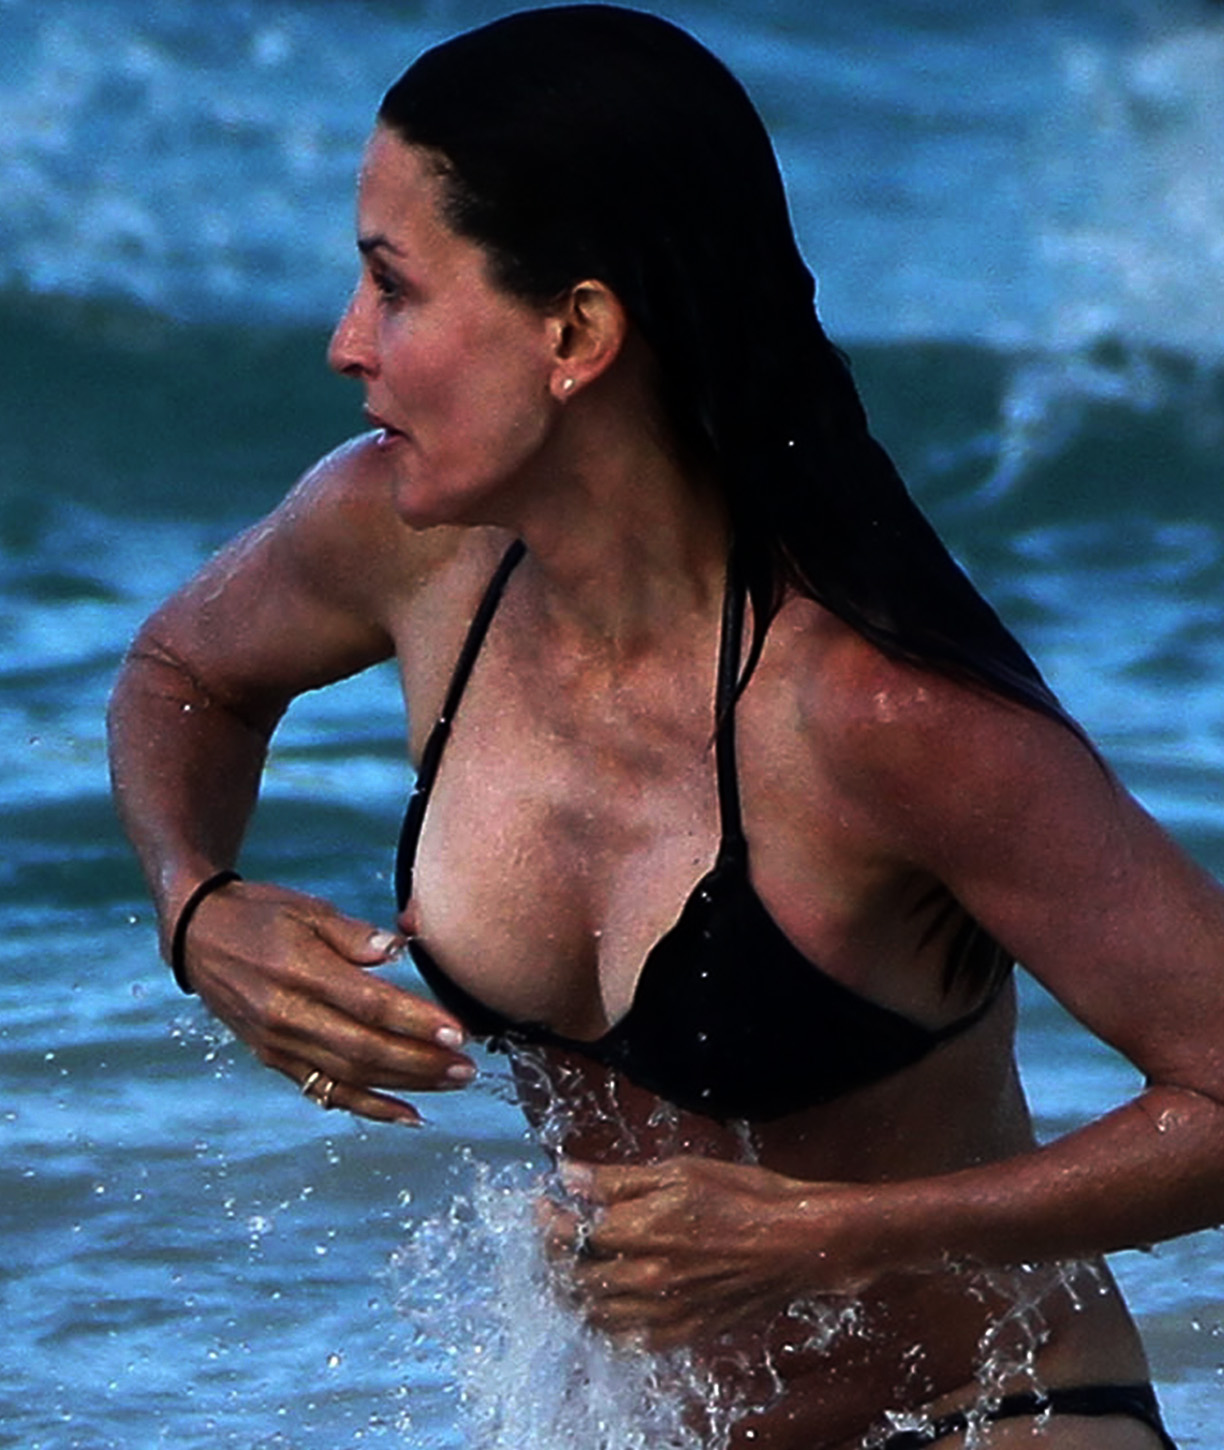 Remarkable nude photos of courtney cox hope, it's